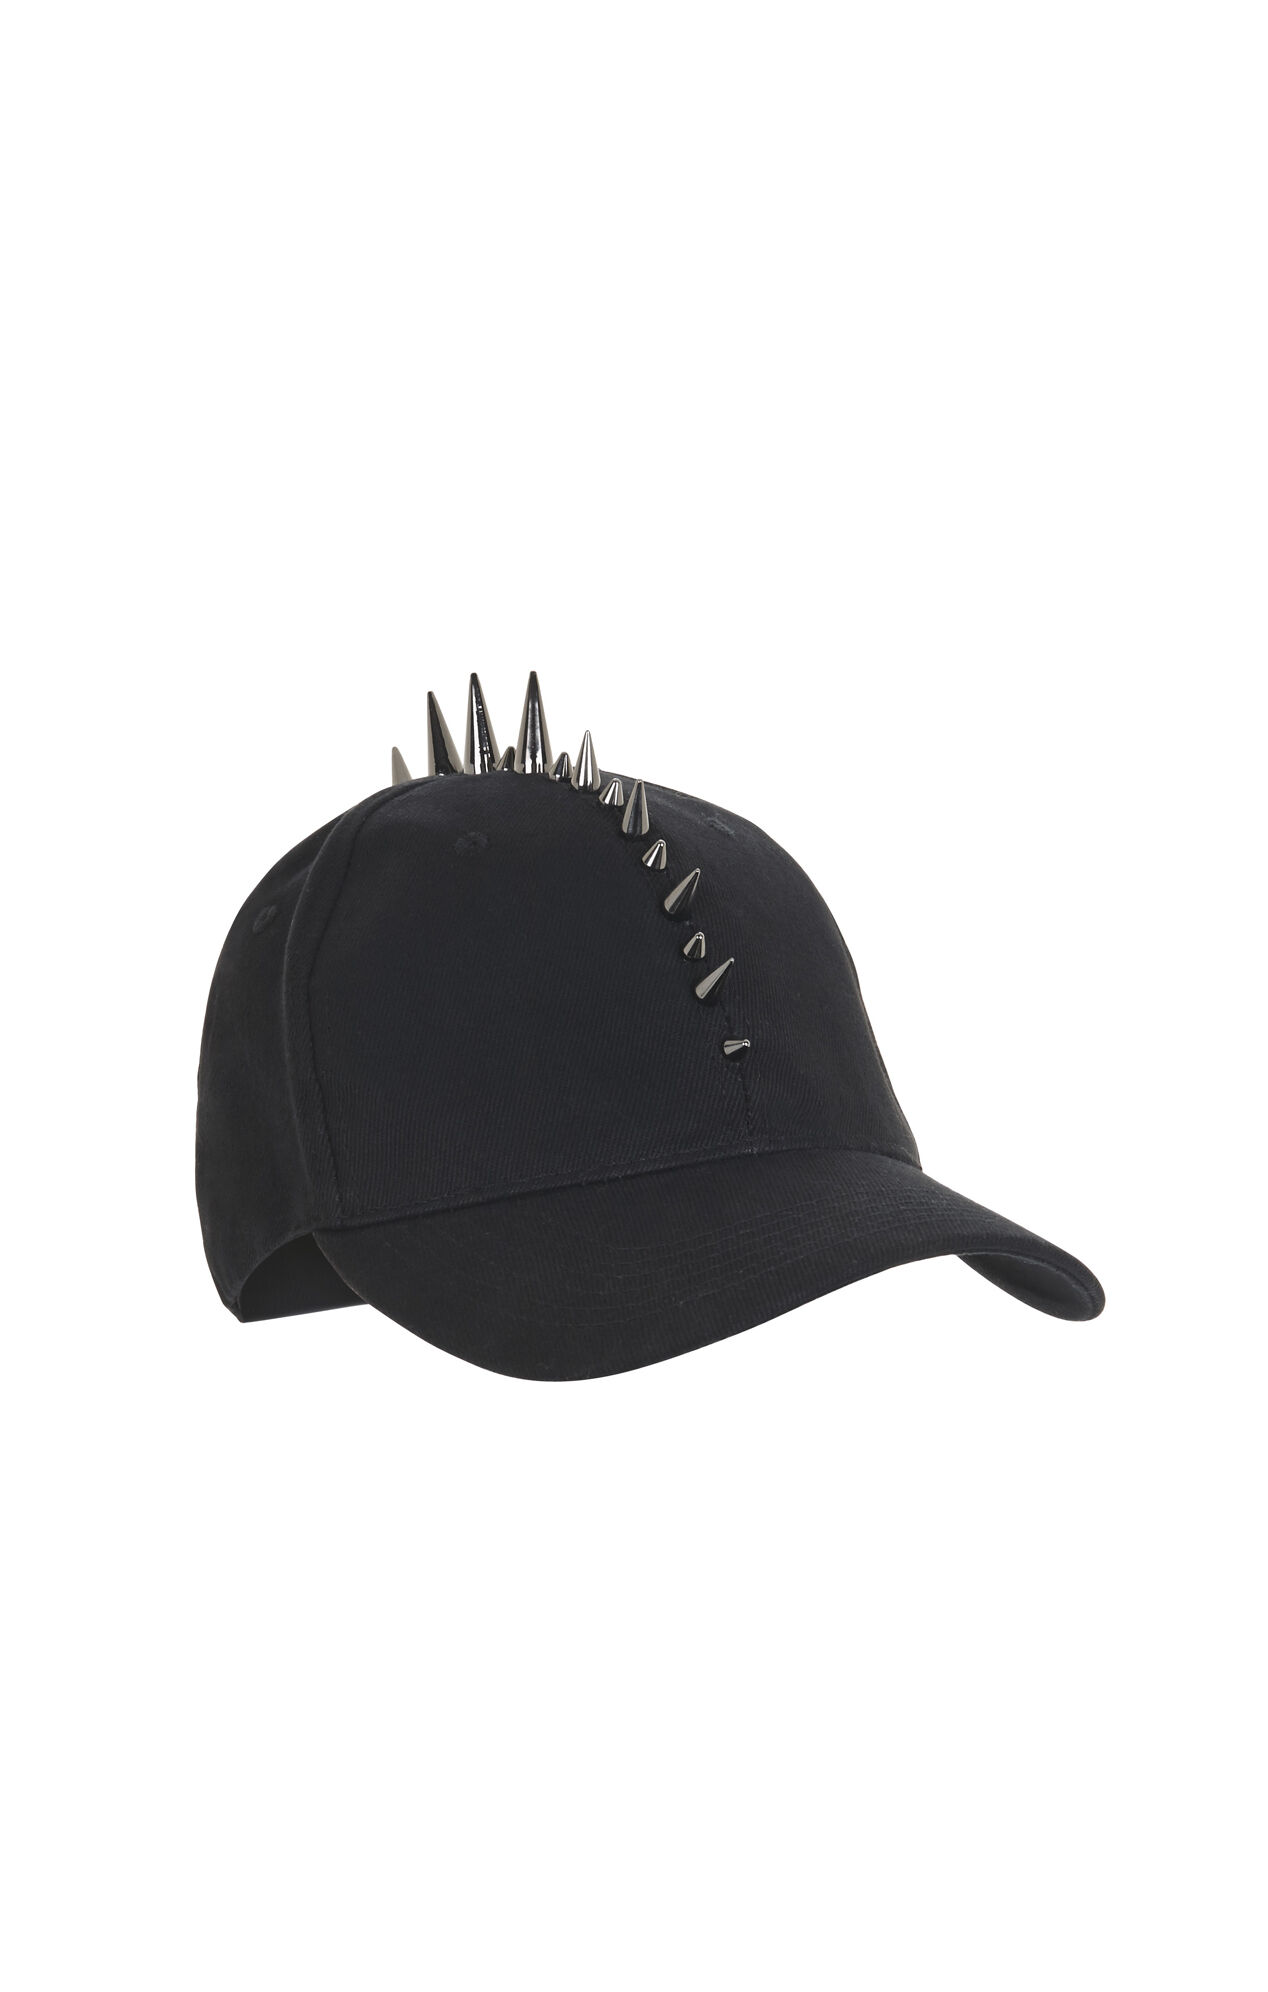 Mohawk-Studded Baseball Hat